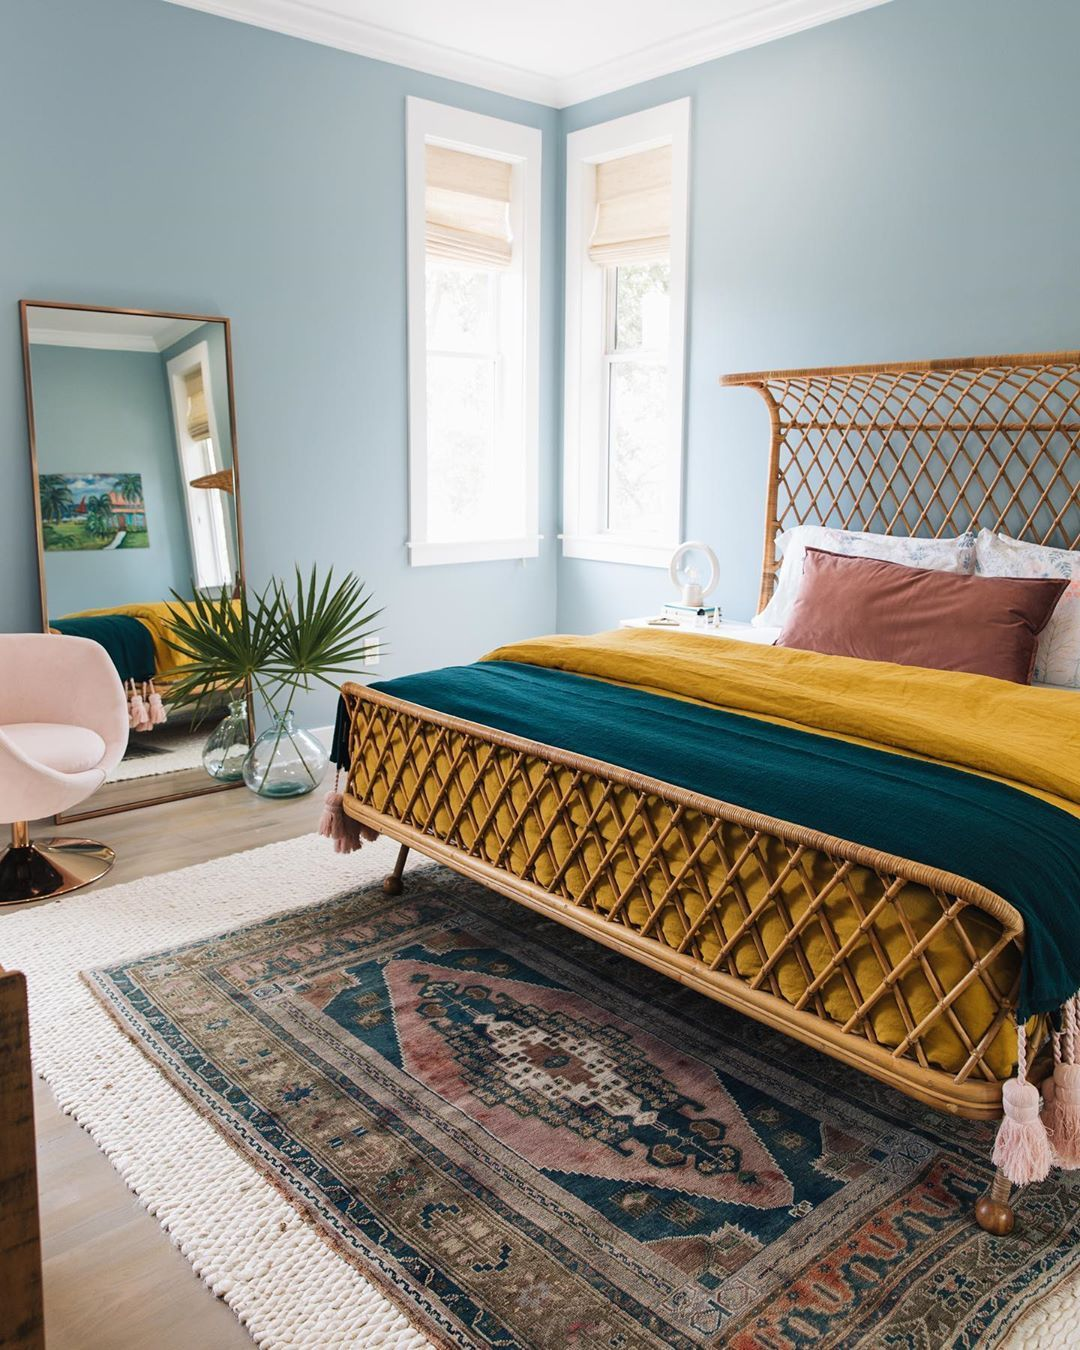 Love The Unique Rattan Bed Frame And Colorful Home Decor In This